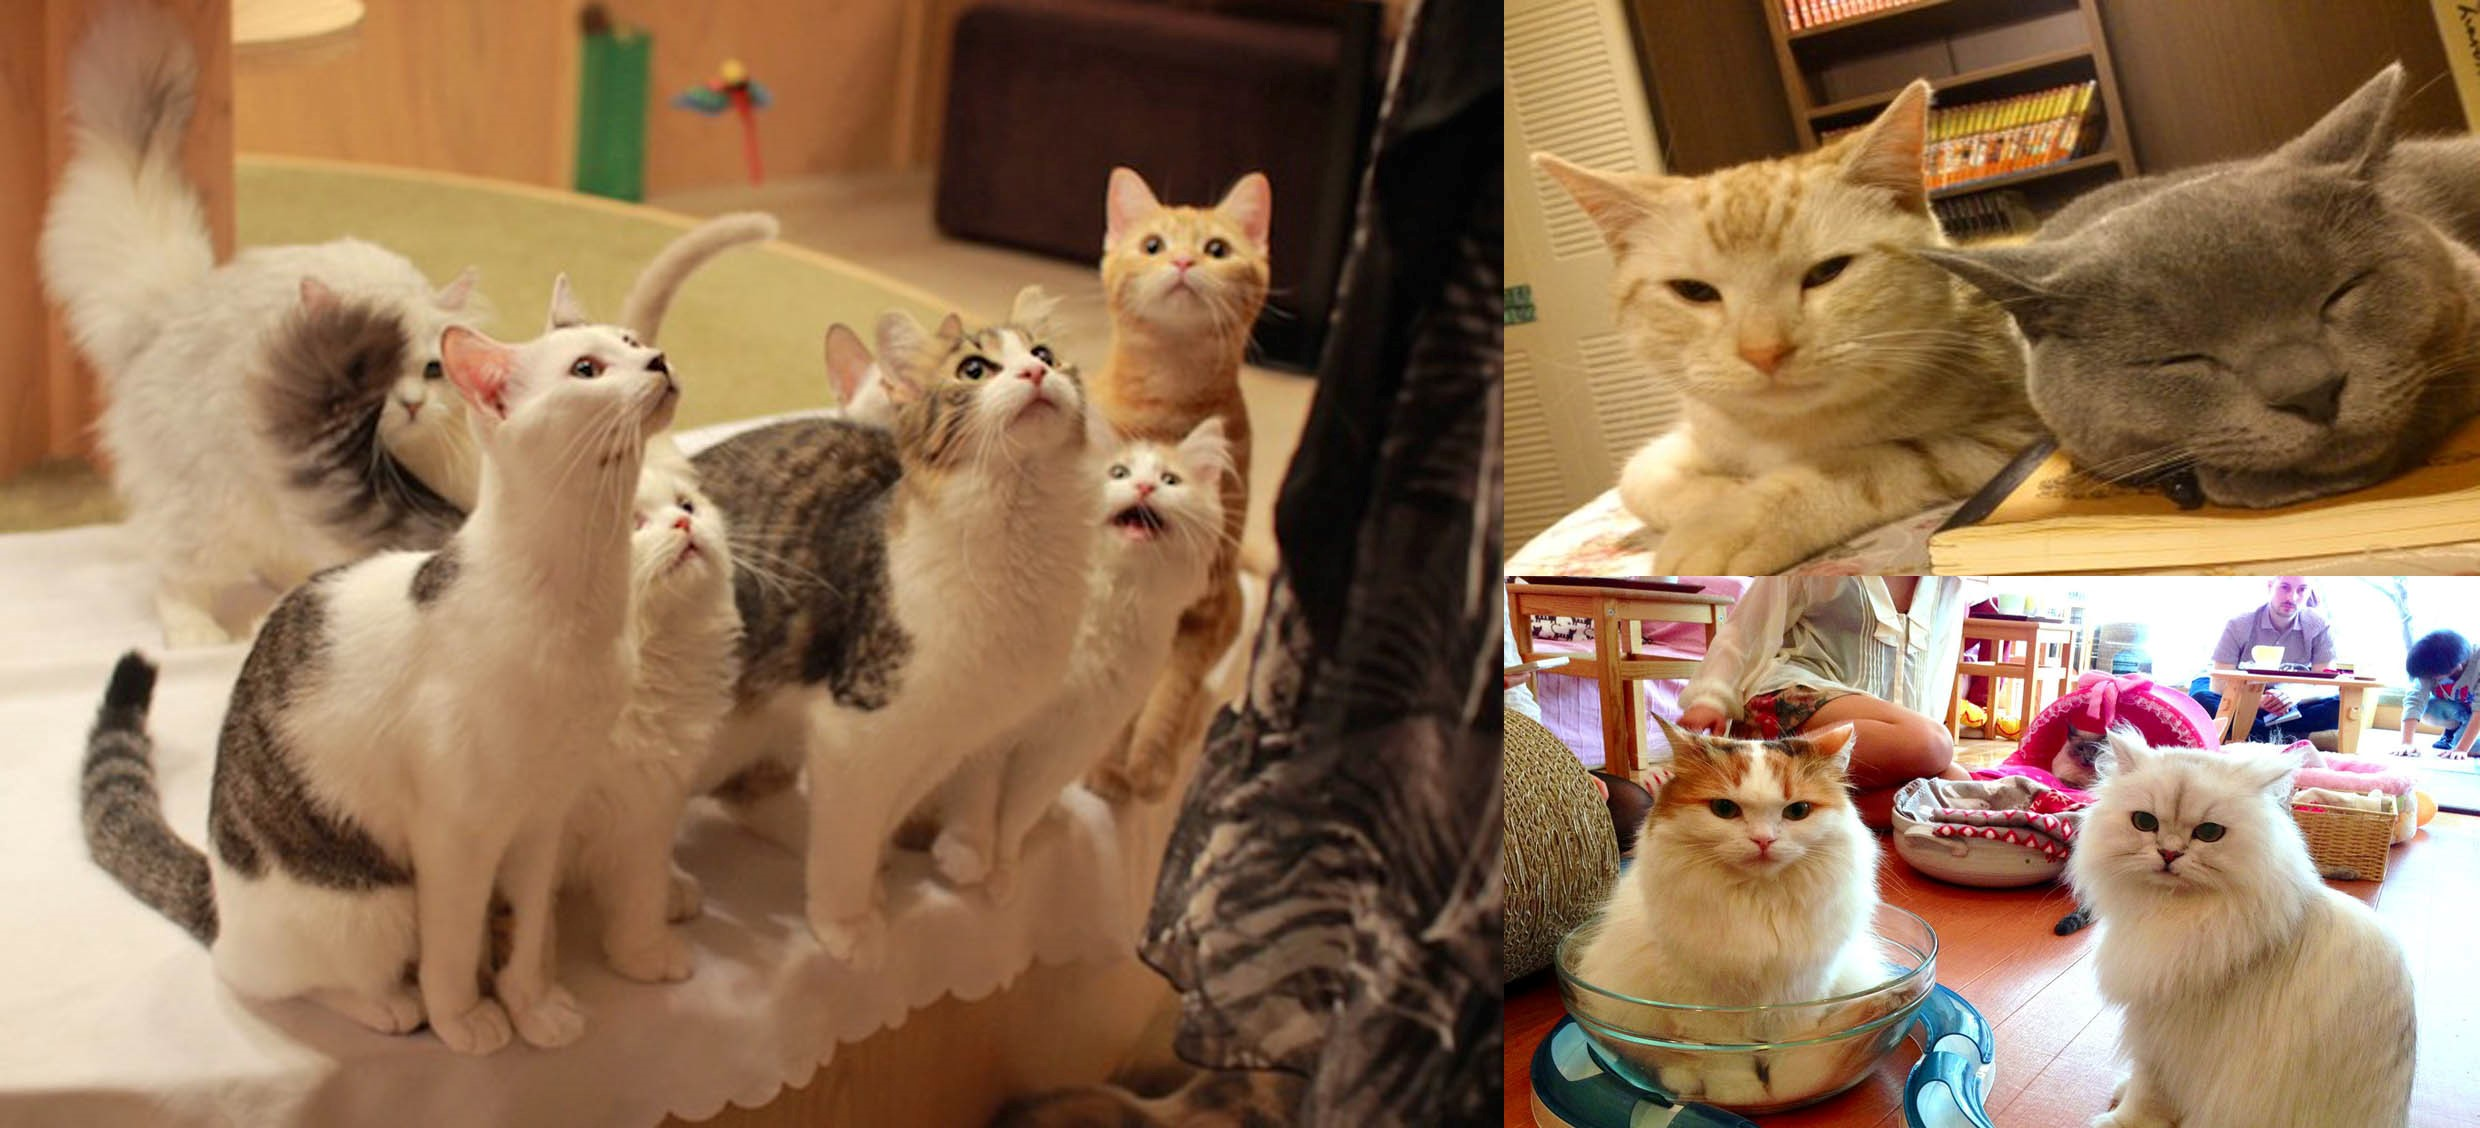 Aisc Japan One Stop Transfer Tokyo City To Cat Cafe